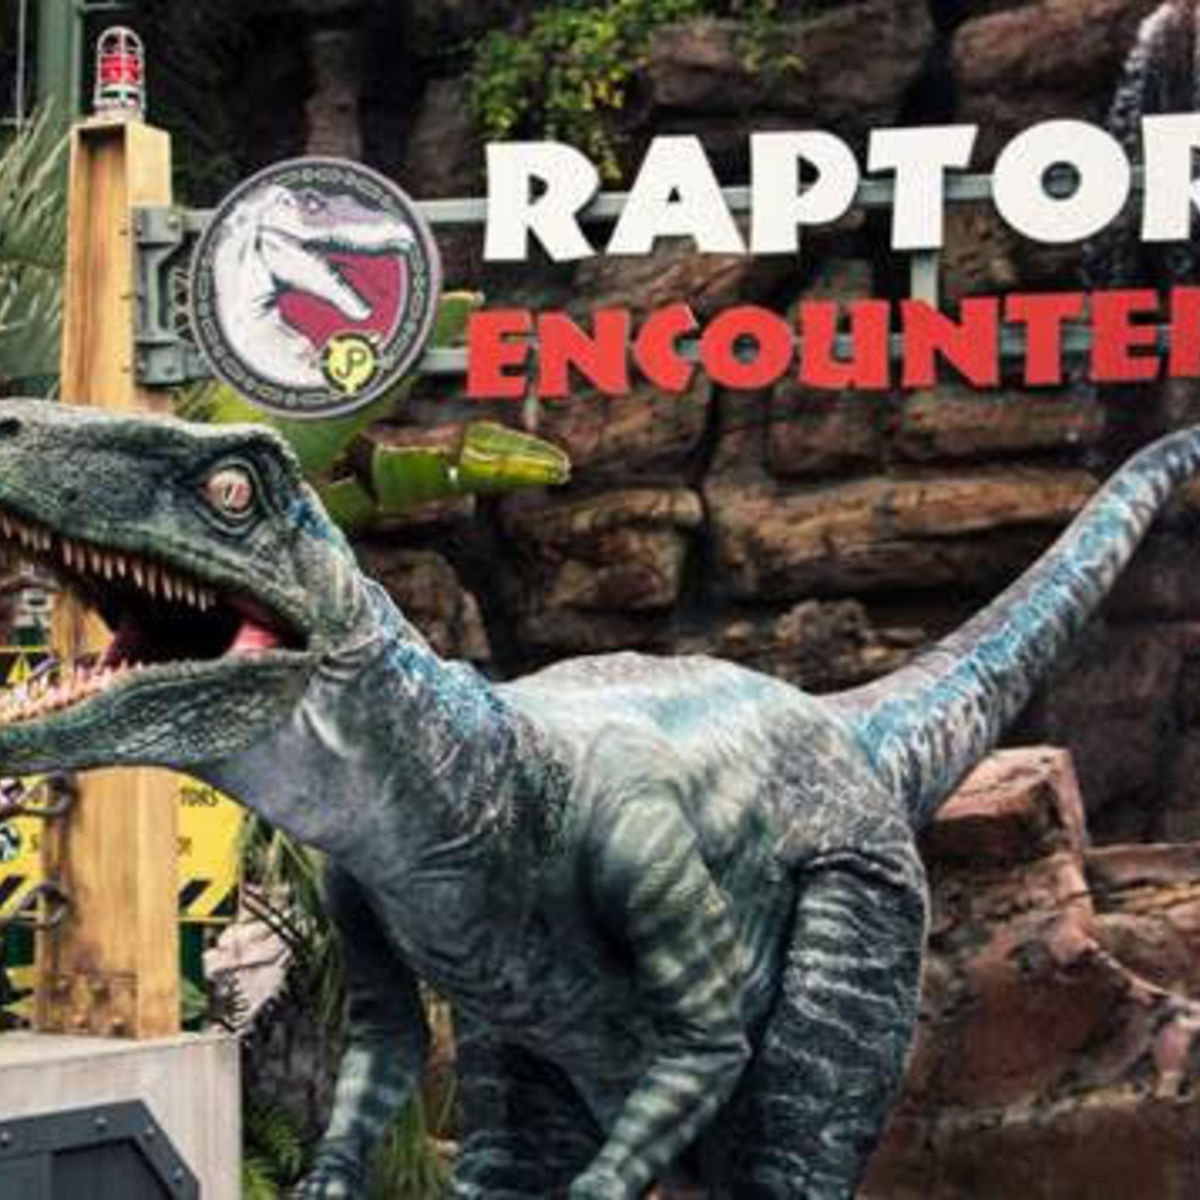 Blue from Jurassic World at Universal Studios' Raptor Encounter